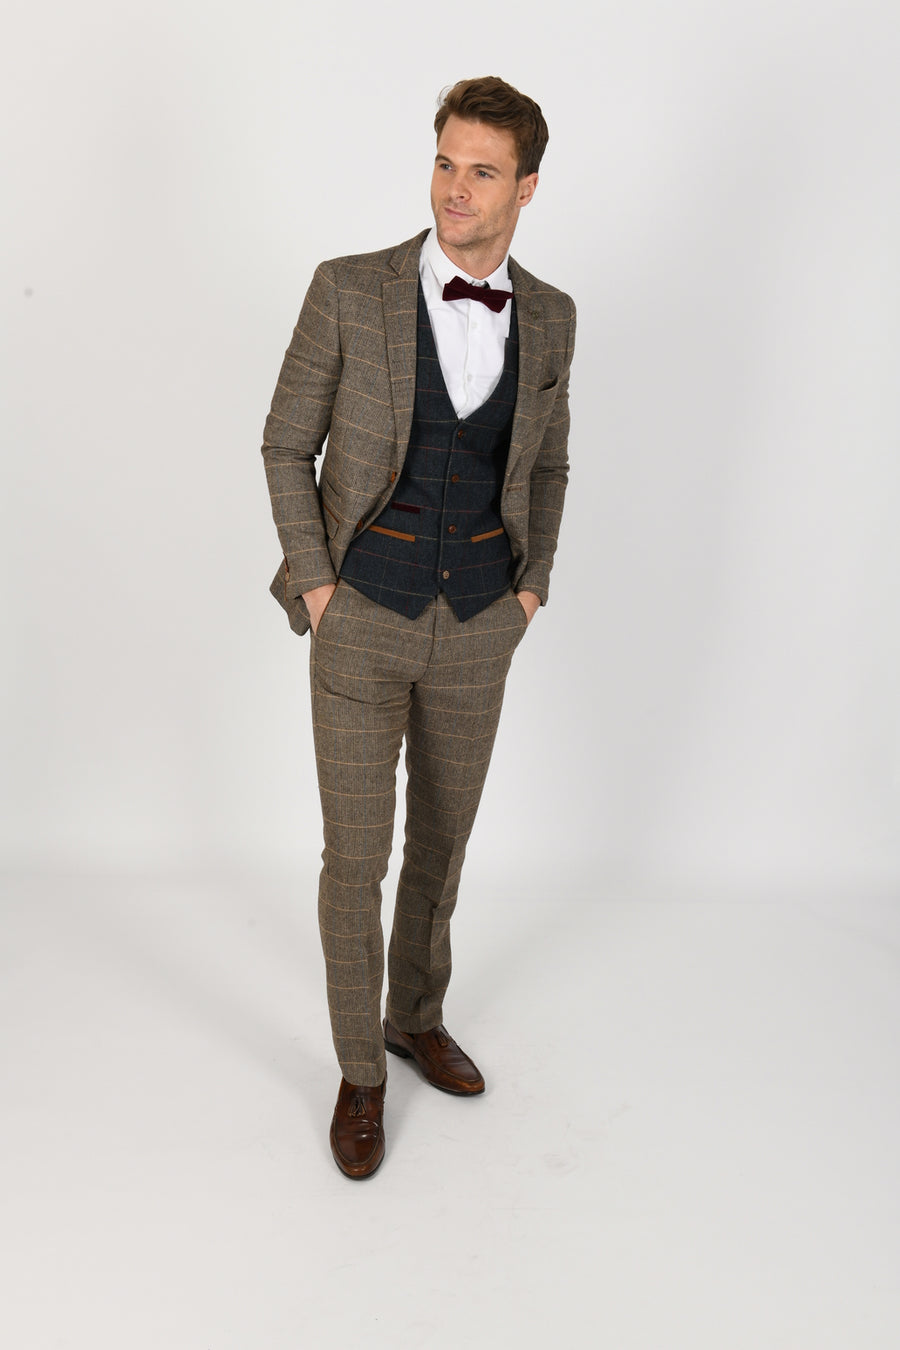 Ted Tan Suit w/ Eton Waistcoat - Wedding Suit Direct